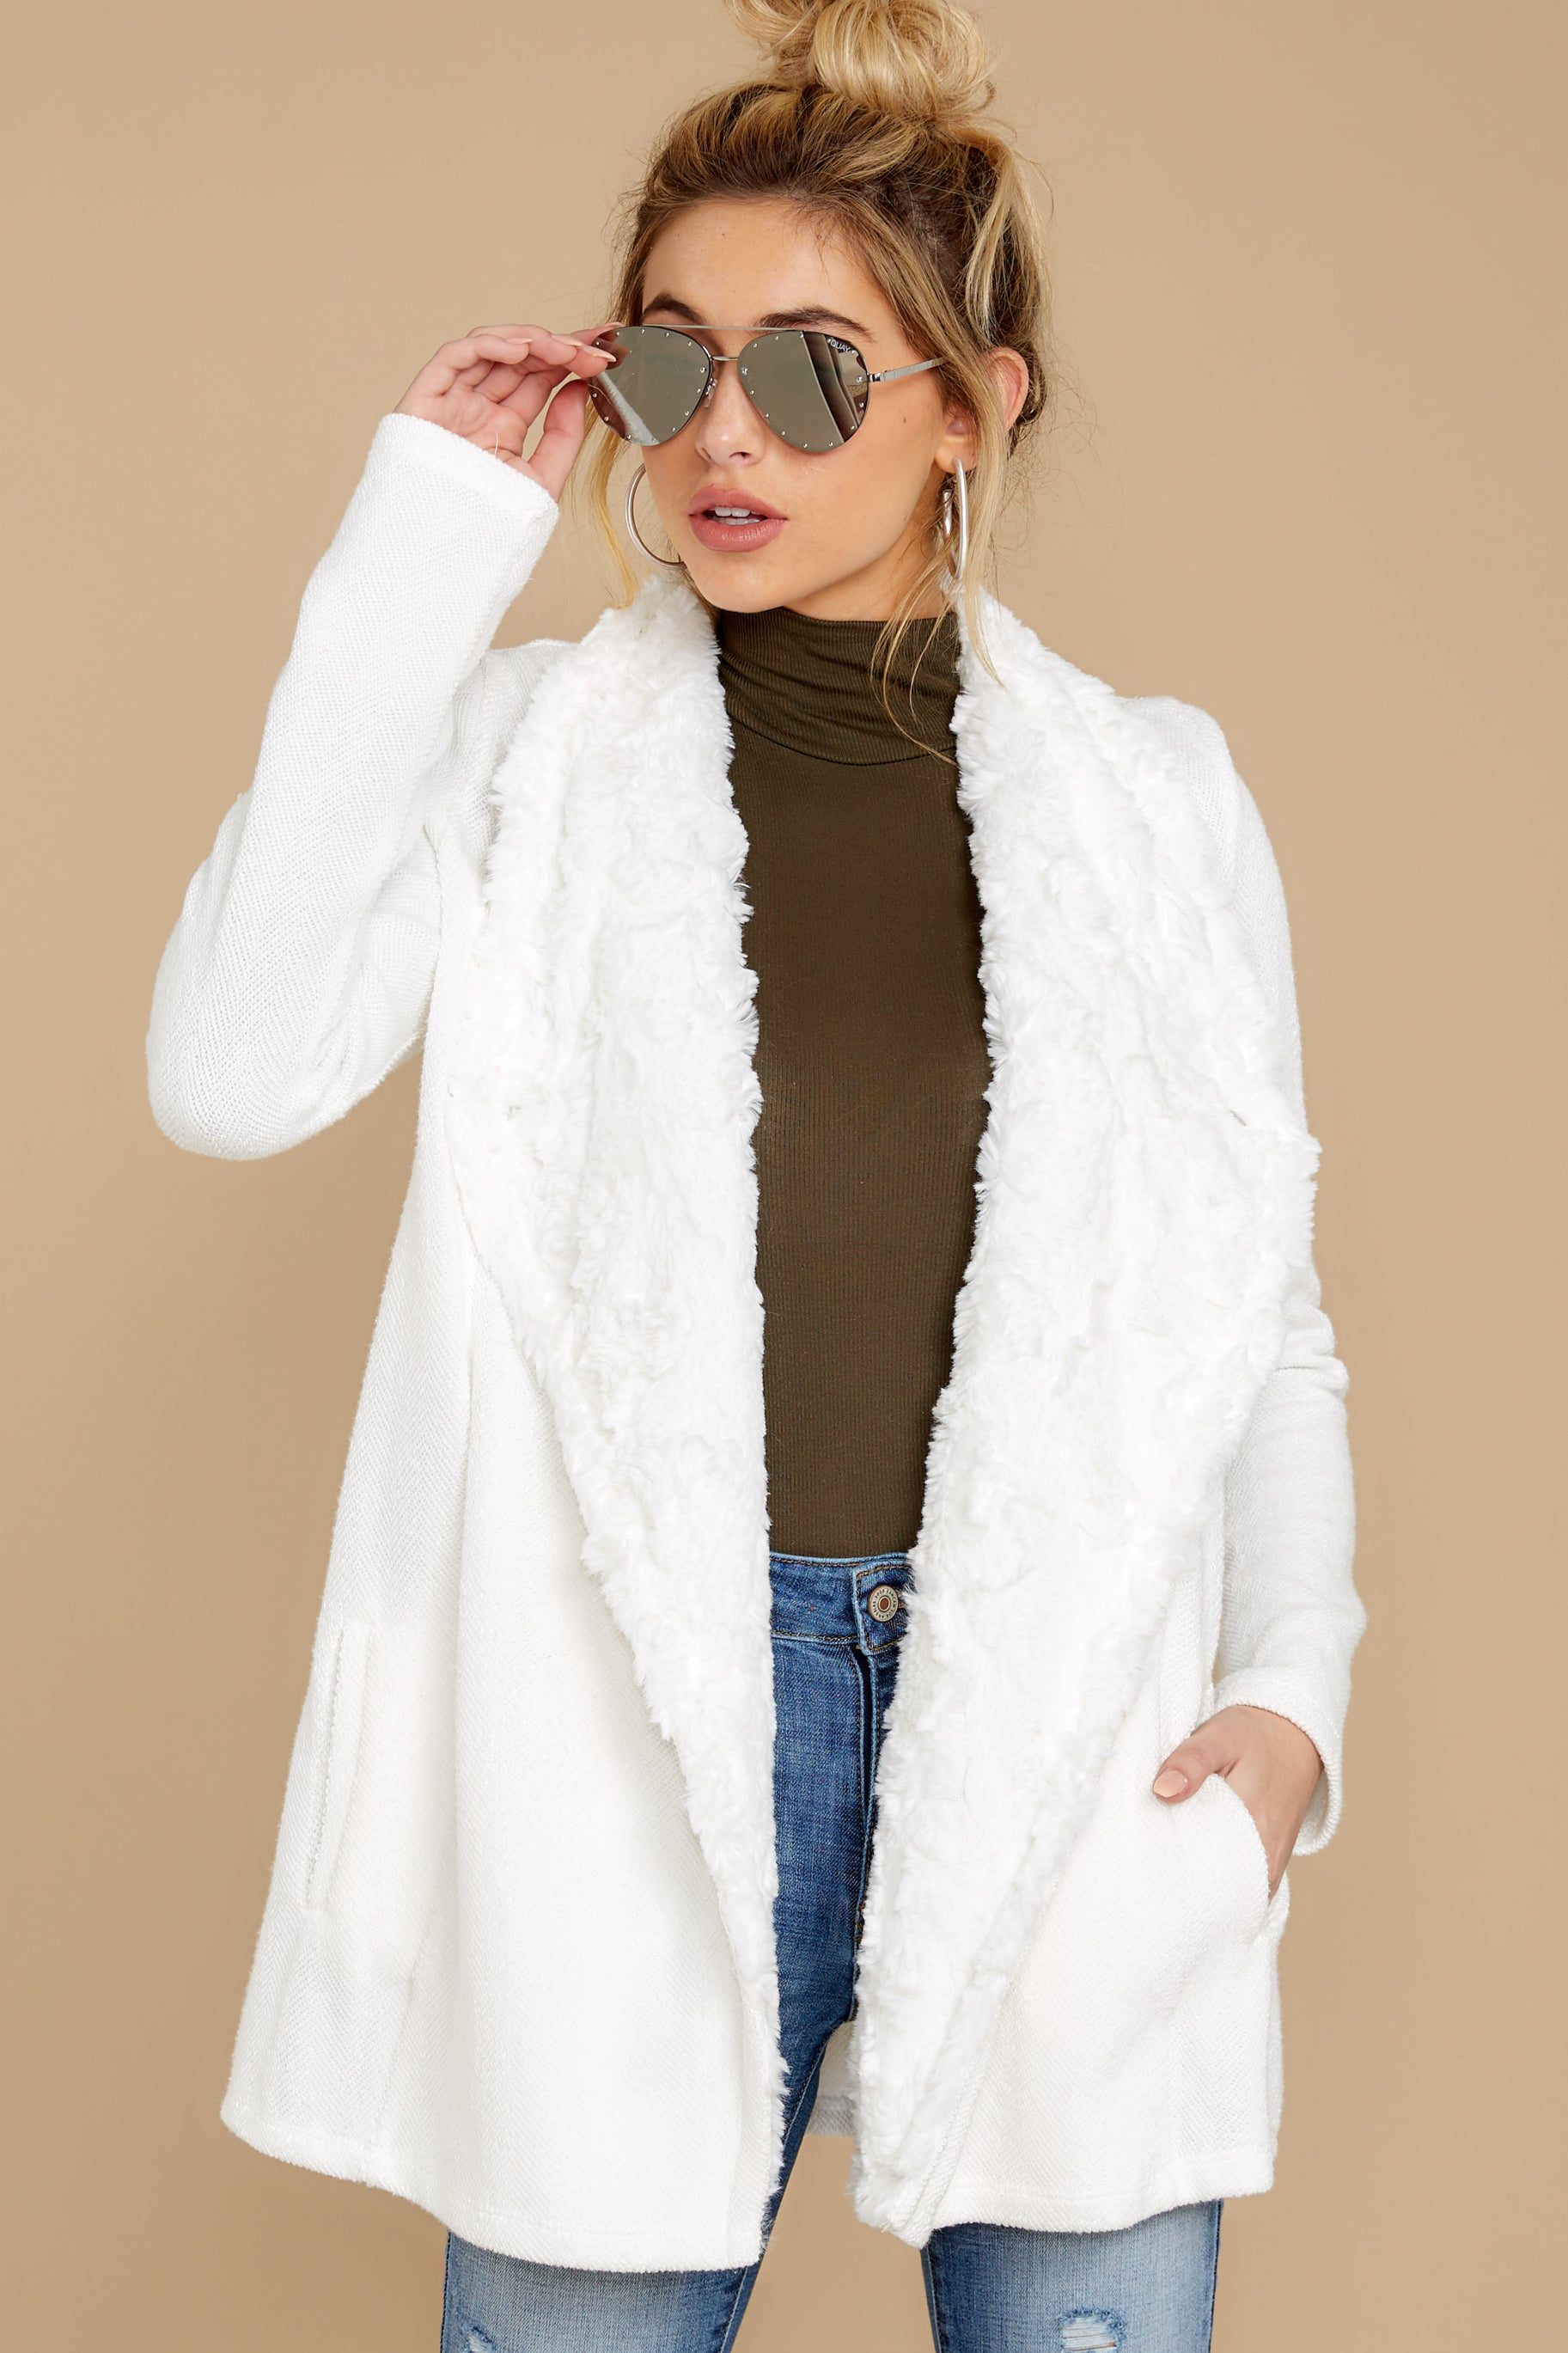 Mixed Emotions White Drape Front Jacket